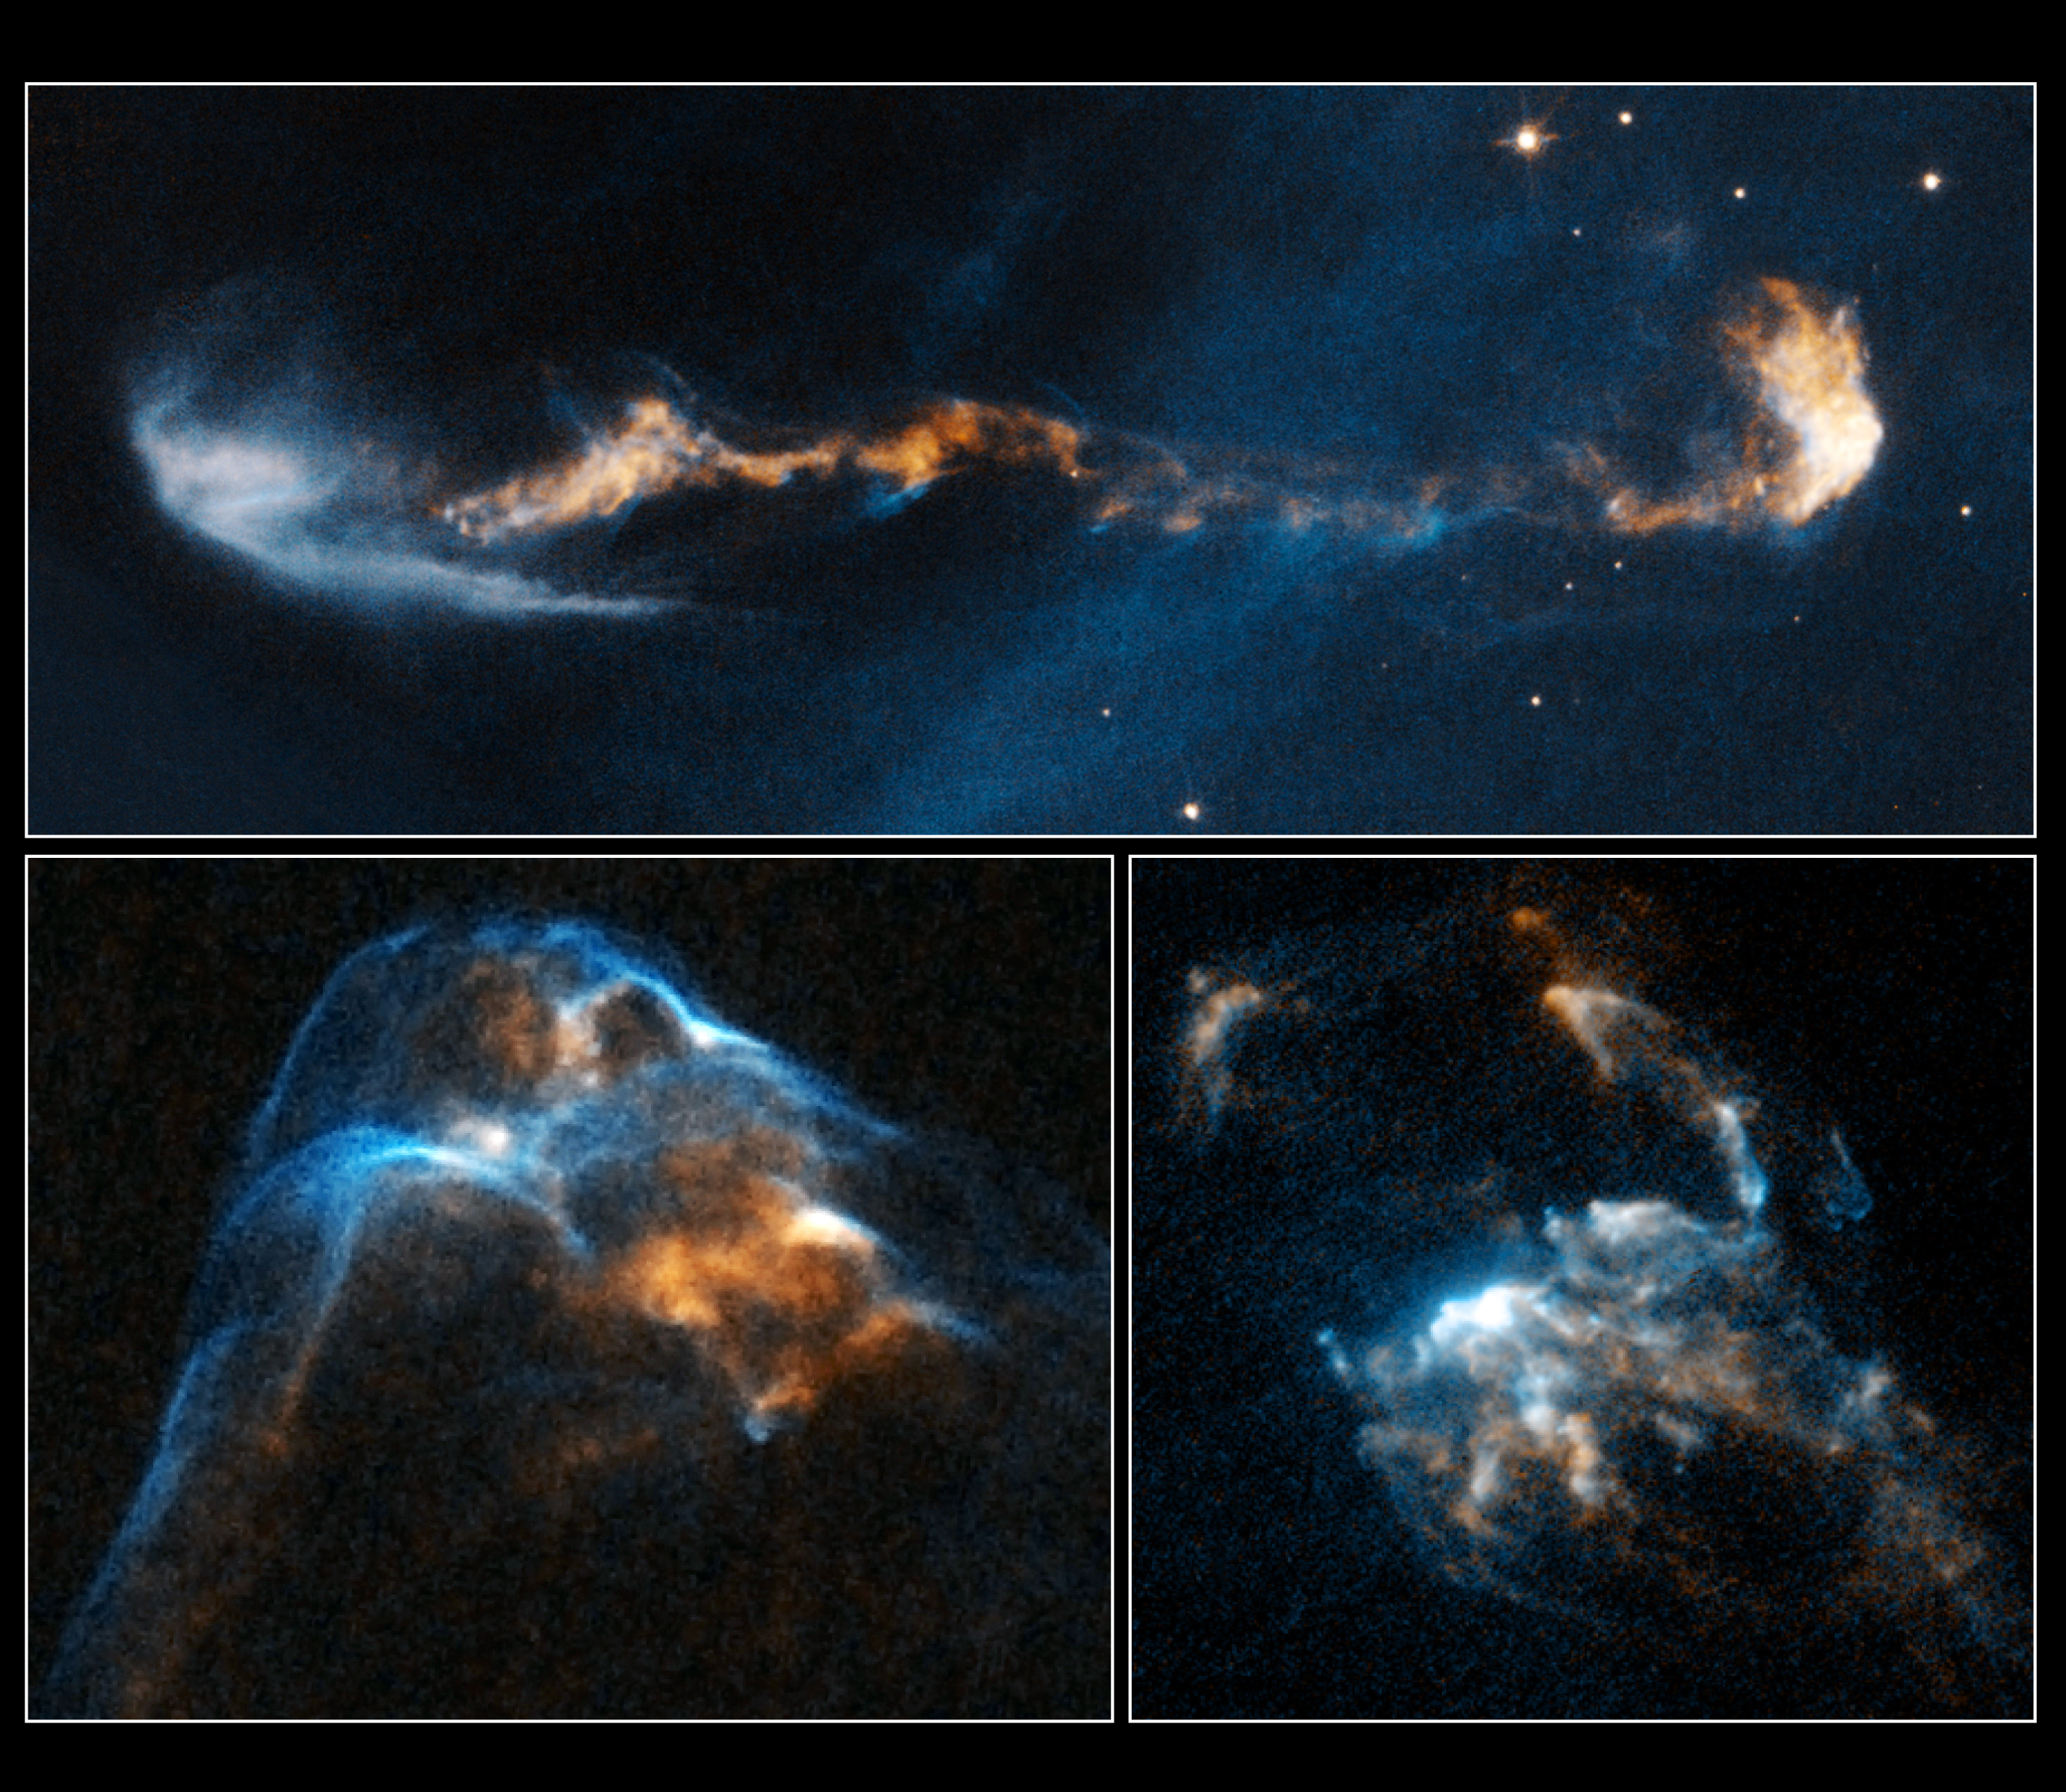 Herbig-Haro objects